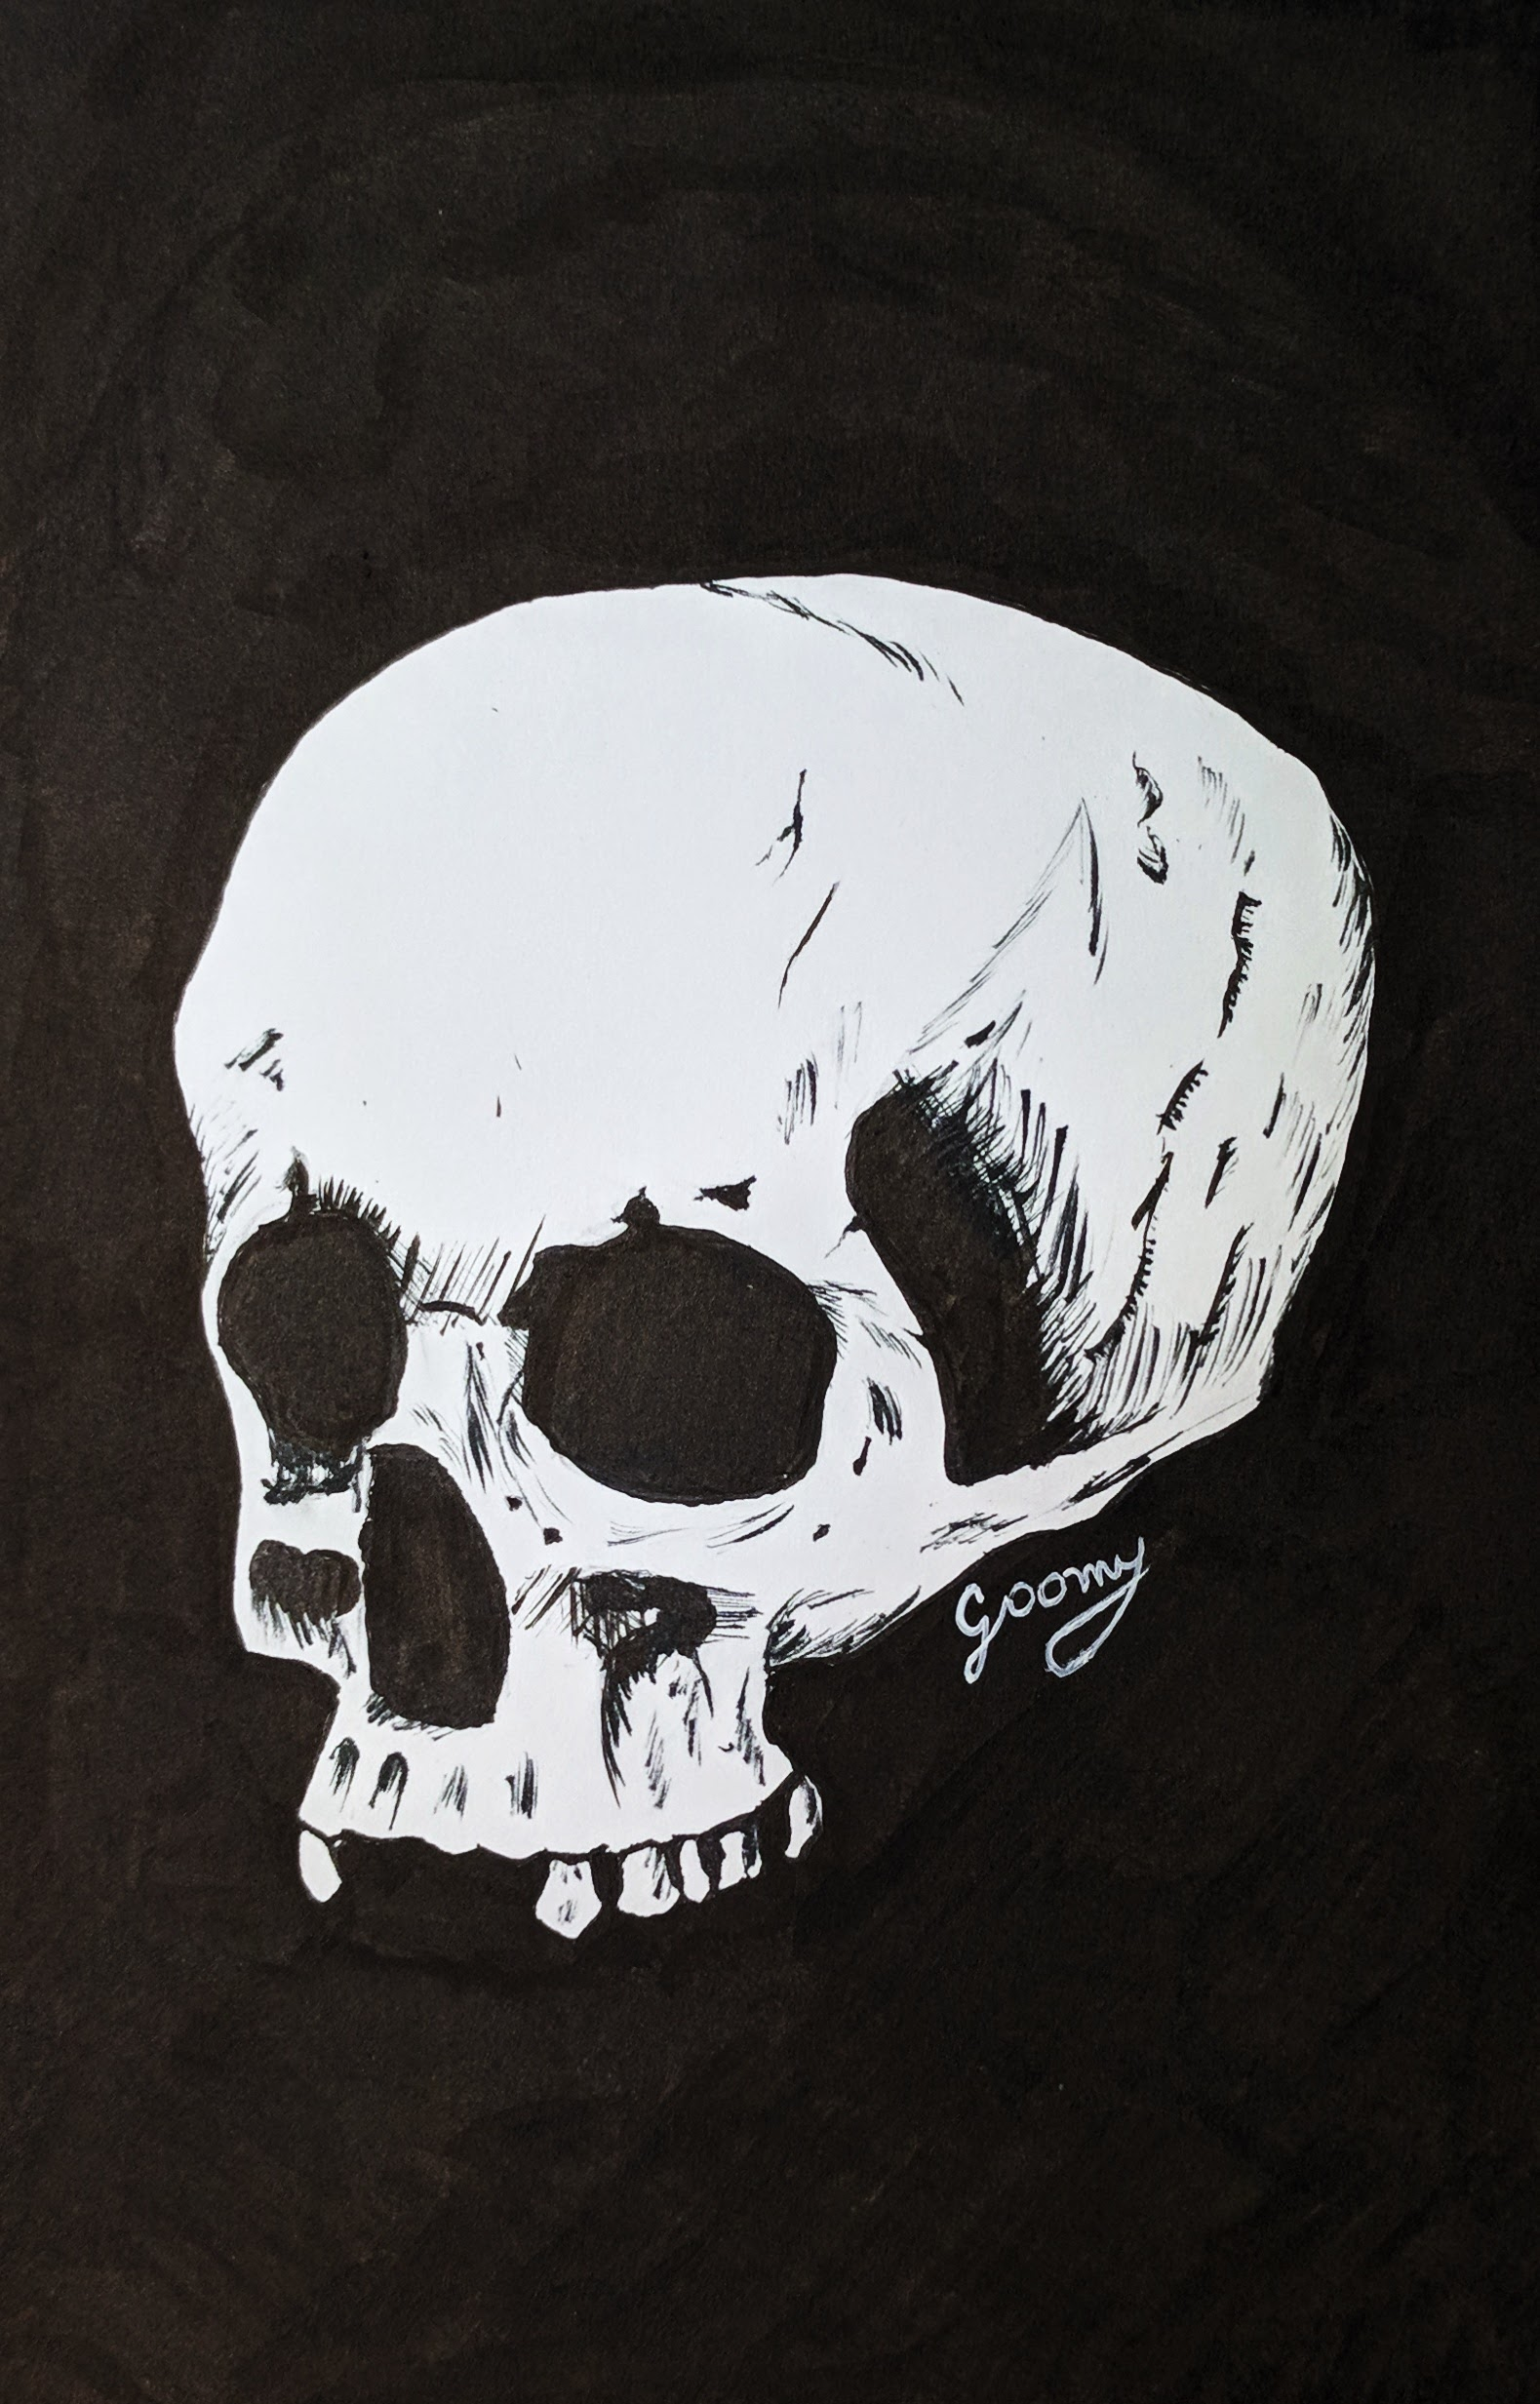 ink drawing of a skull on a black background